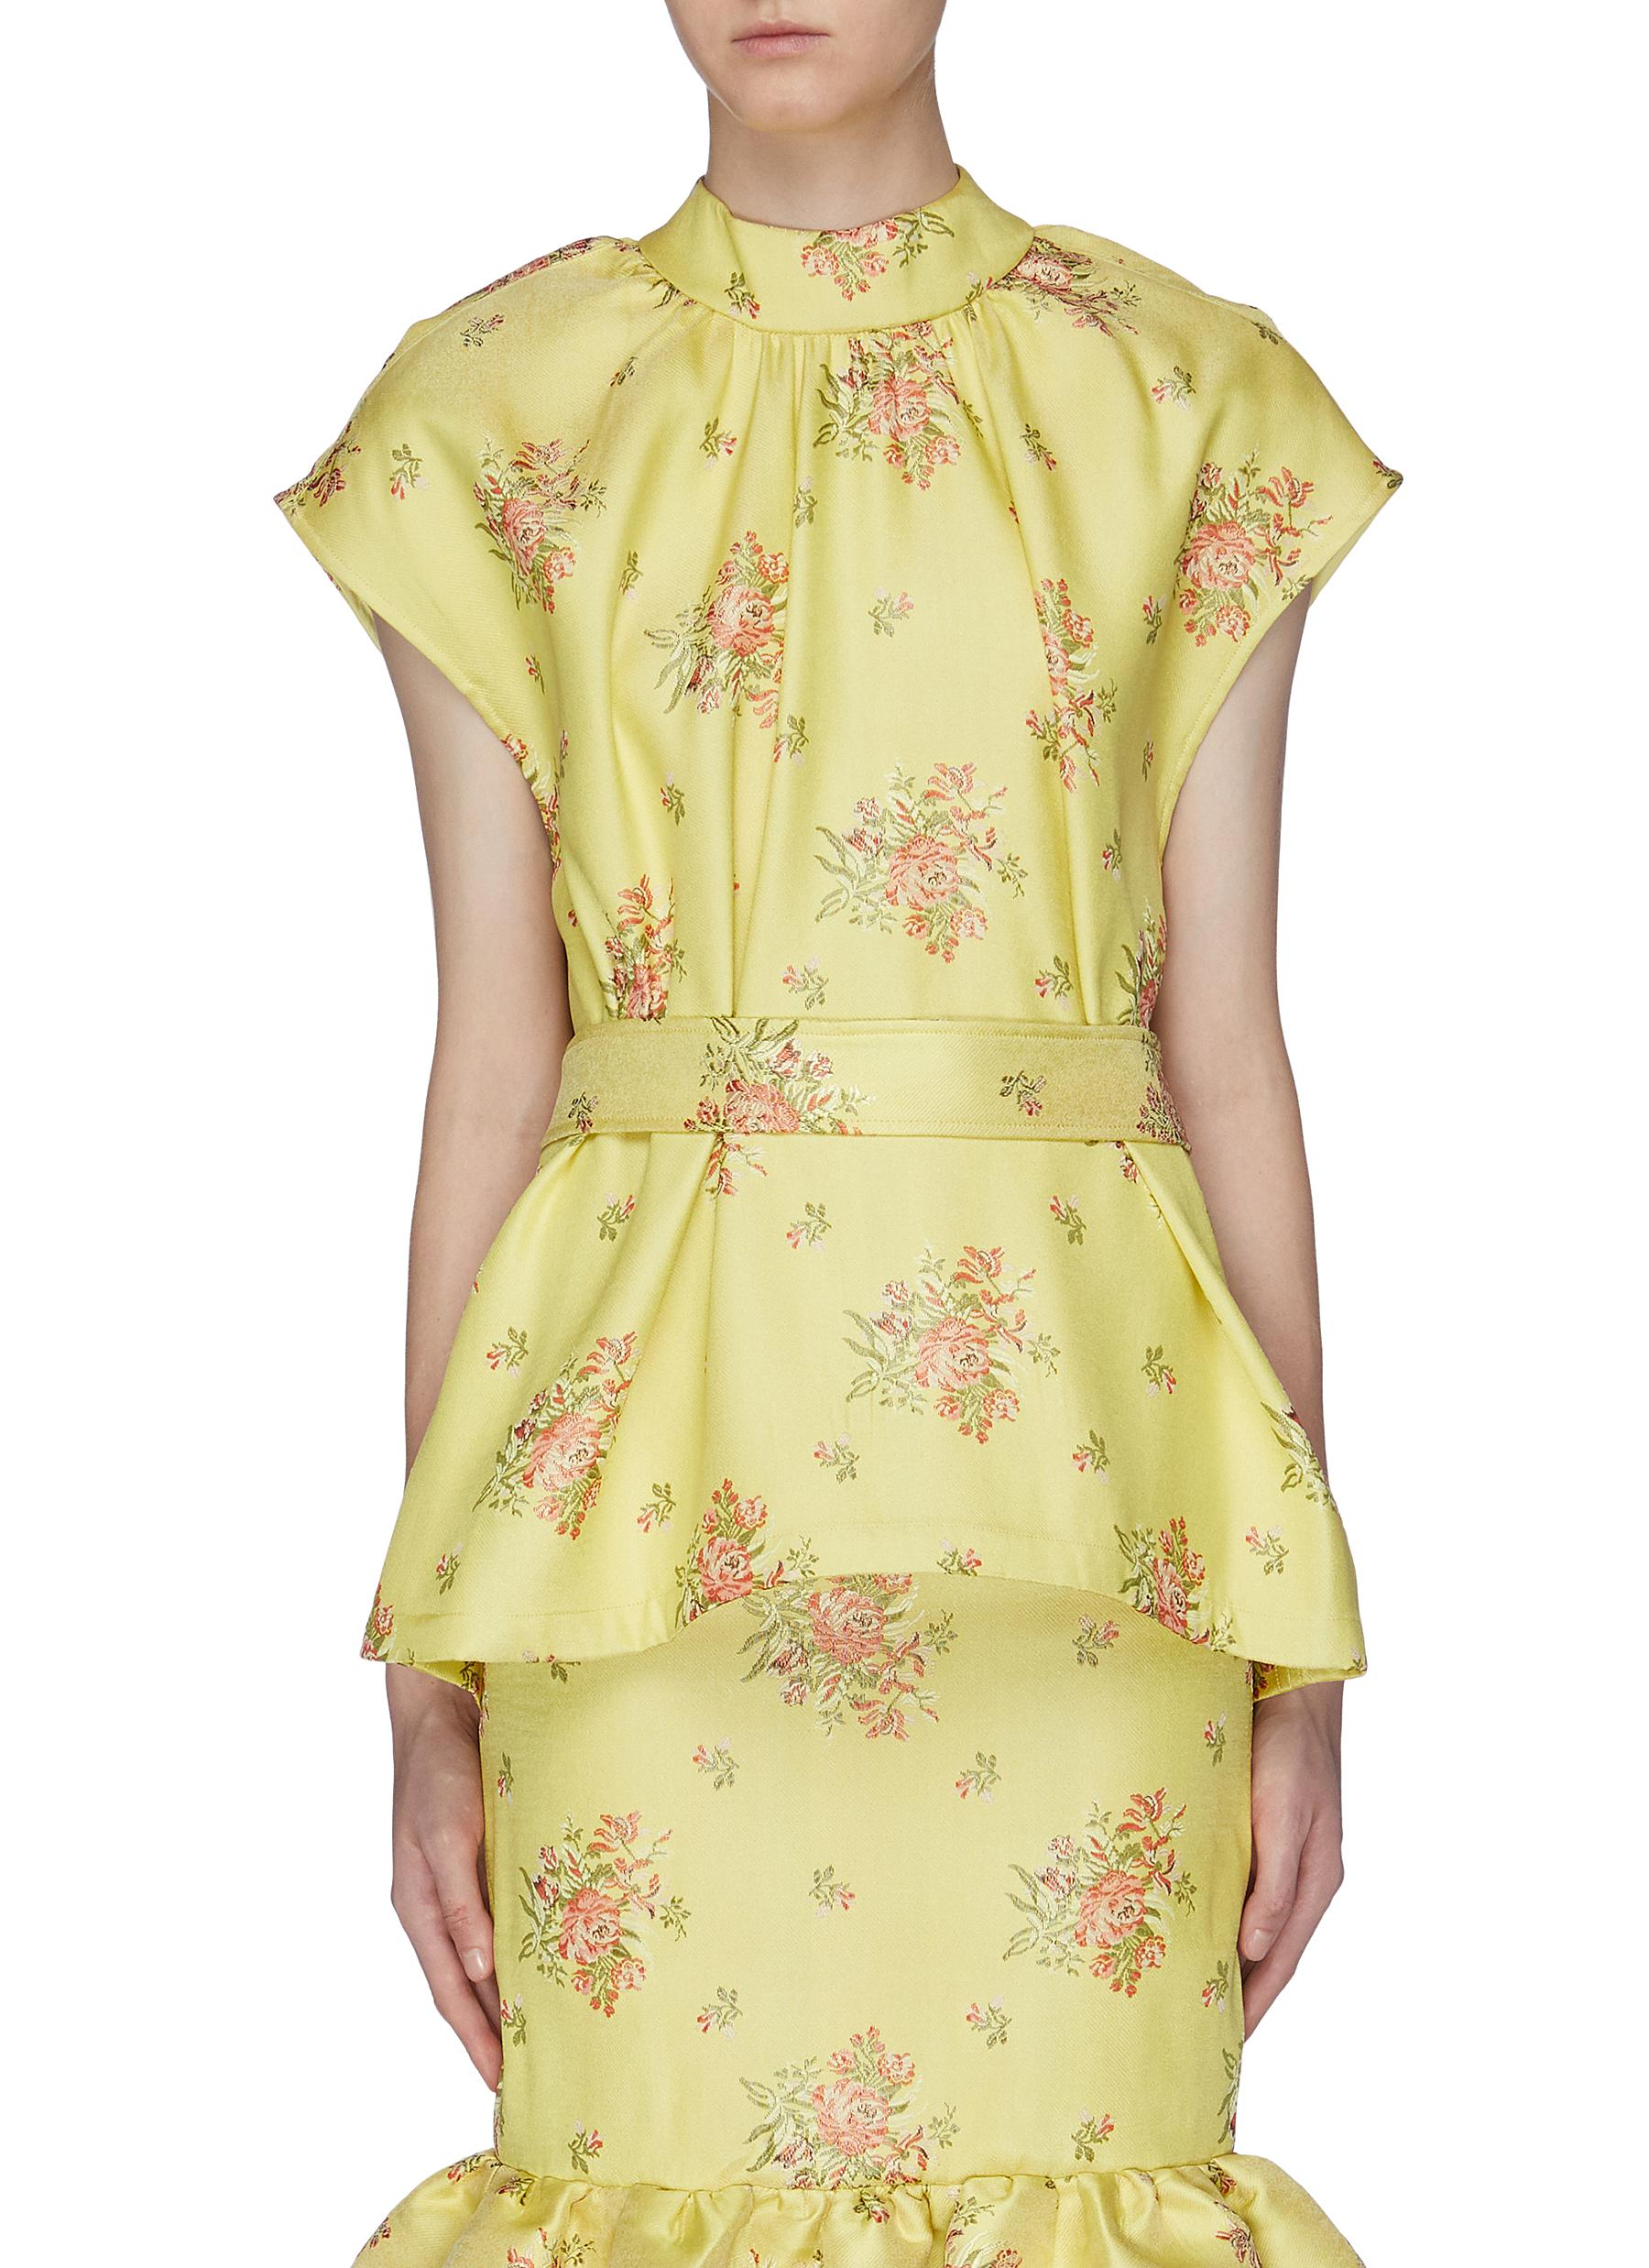 Cape back floral brocade peplum top by Ming Ma